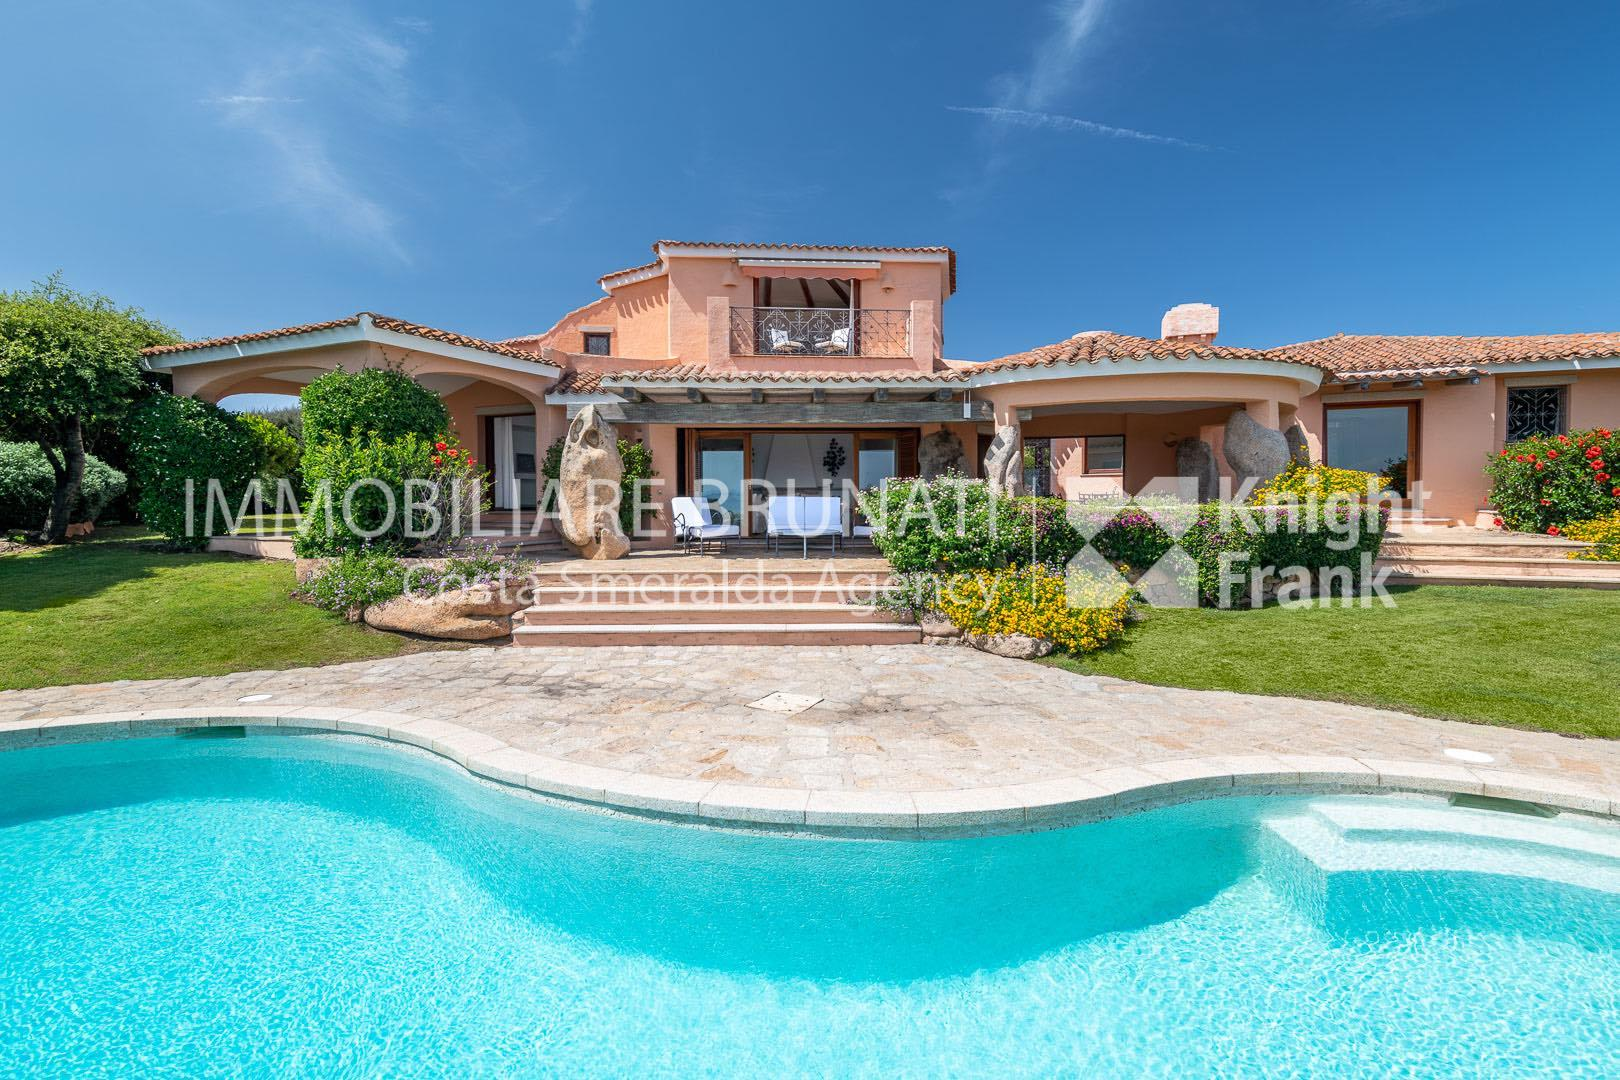 Immobiliare brunati villa in pevero golf sardegna italia for Immobiliare sardegna